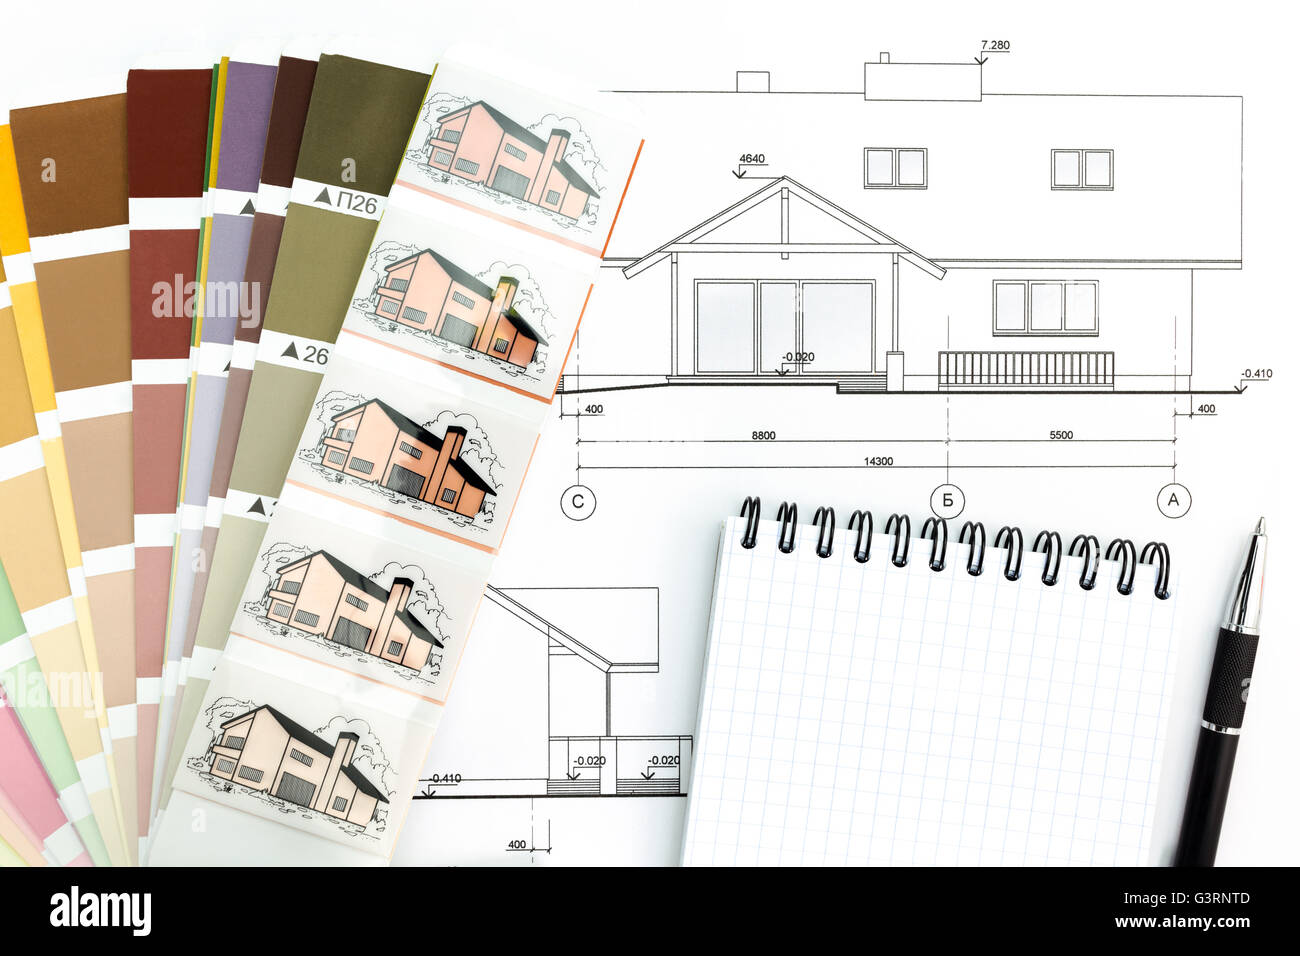 Blueprint of architectural drawing with notepad and color samples blueprint of architectural drawing with notepad and color samples malvernweather Image collections